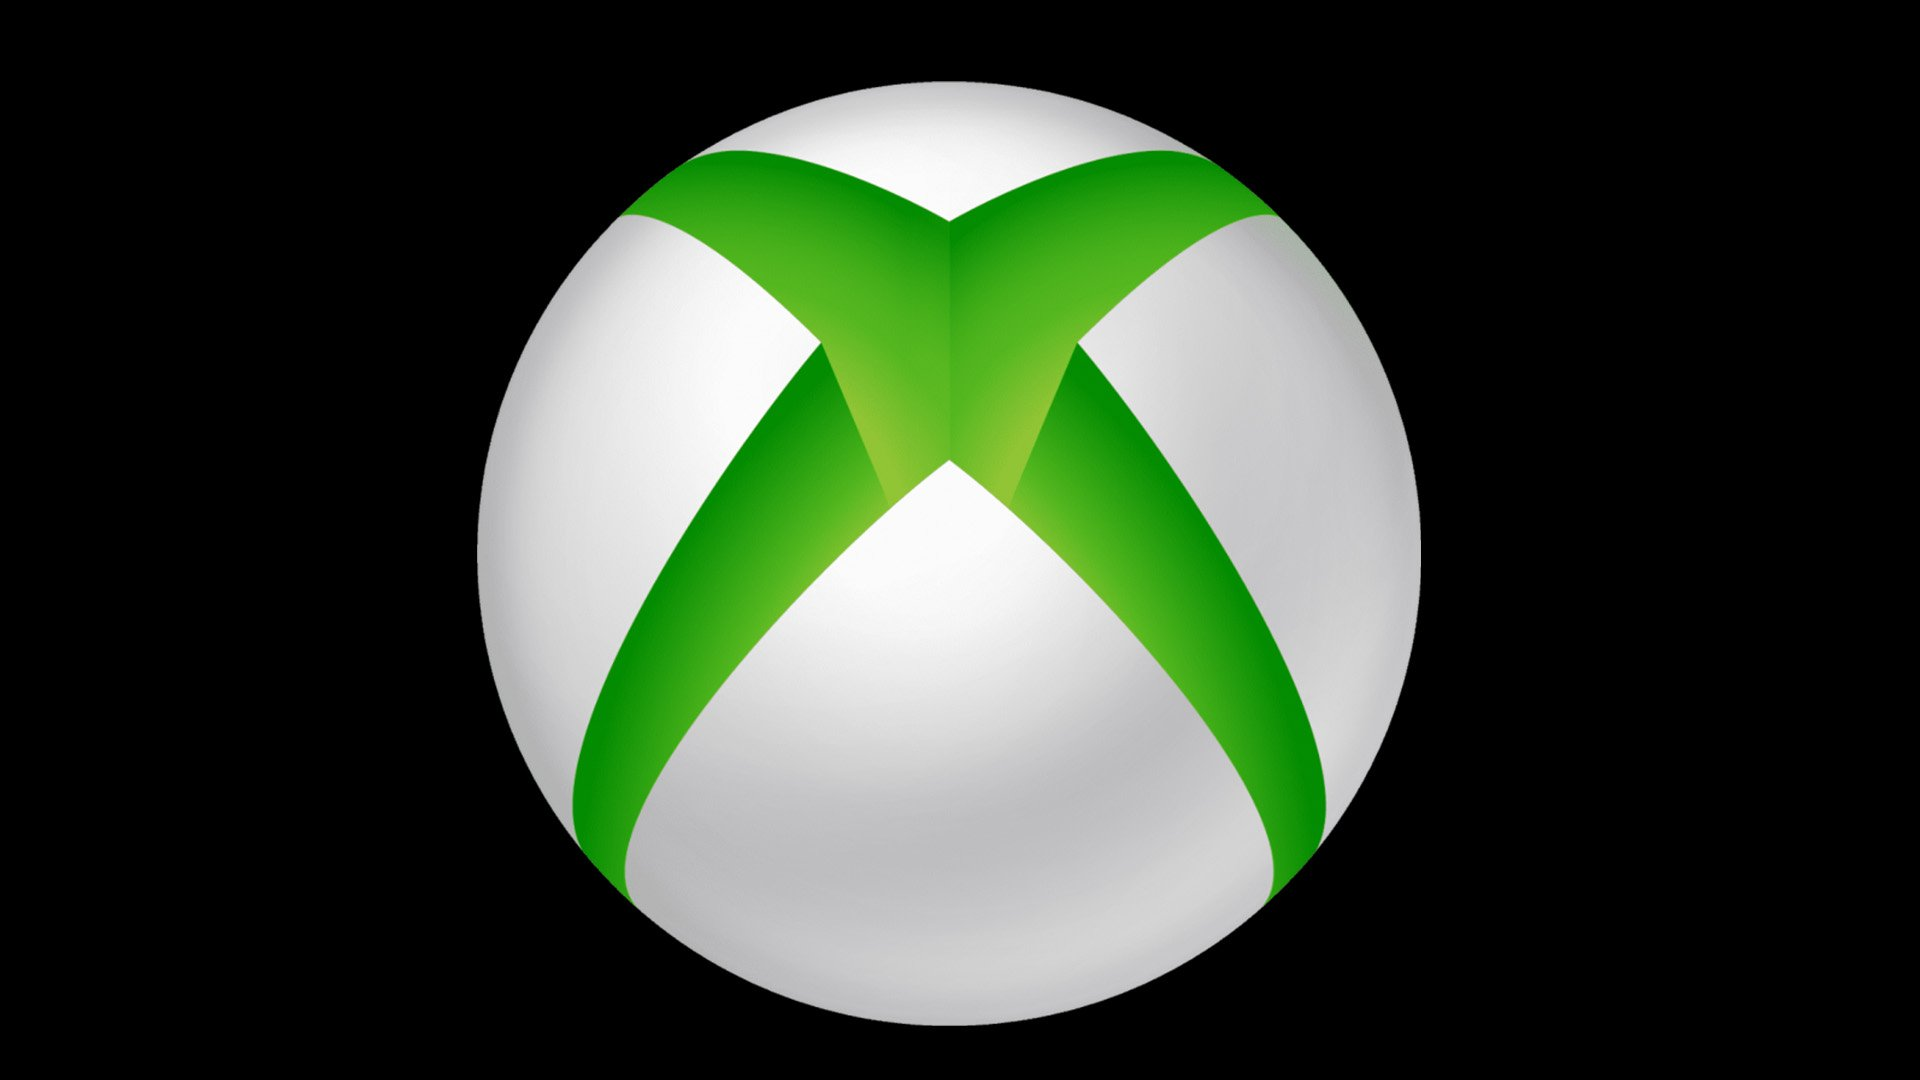 Xbox Logo And Symbol Meaning History Png